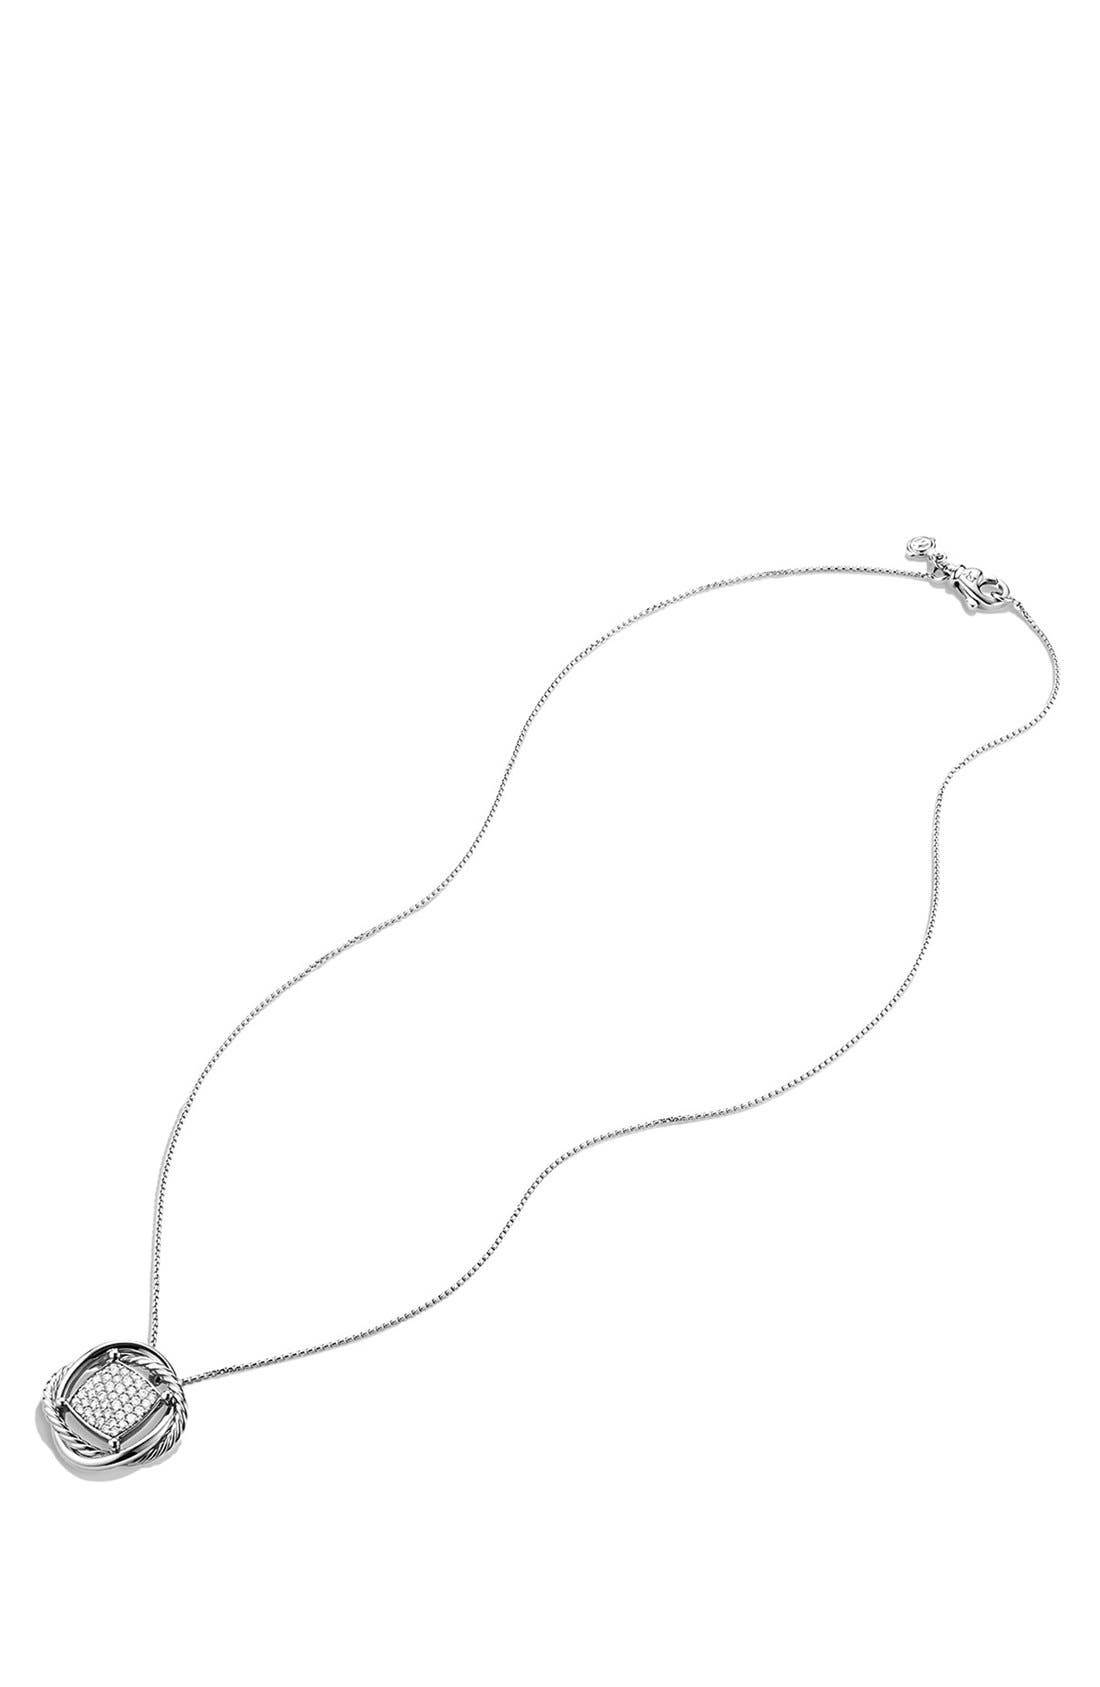 Alternate Image 2  - David Yurman 'Infinity' Pendant with Diamonds on Chain